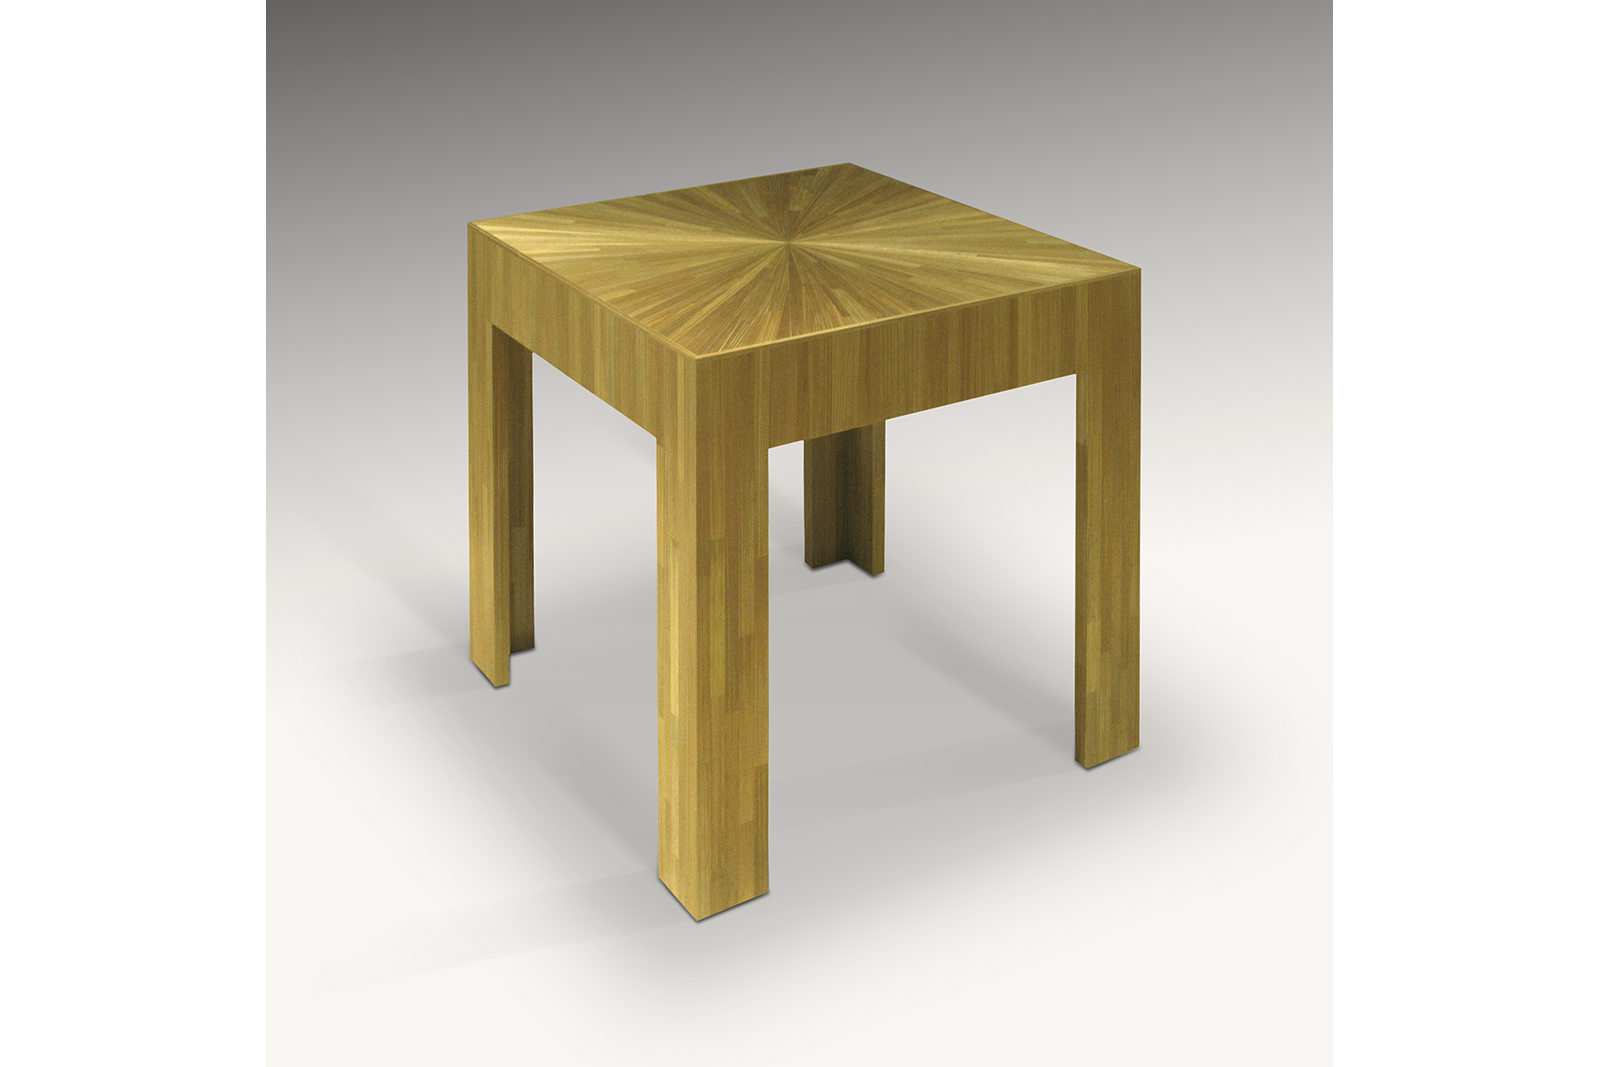 J.m. Frank Inspired Square Table In Straw Marquetry